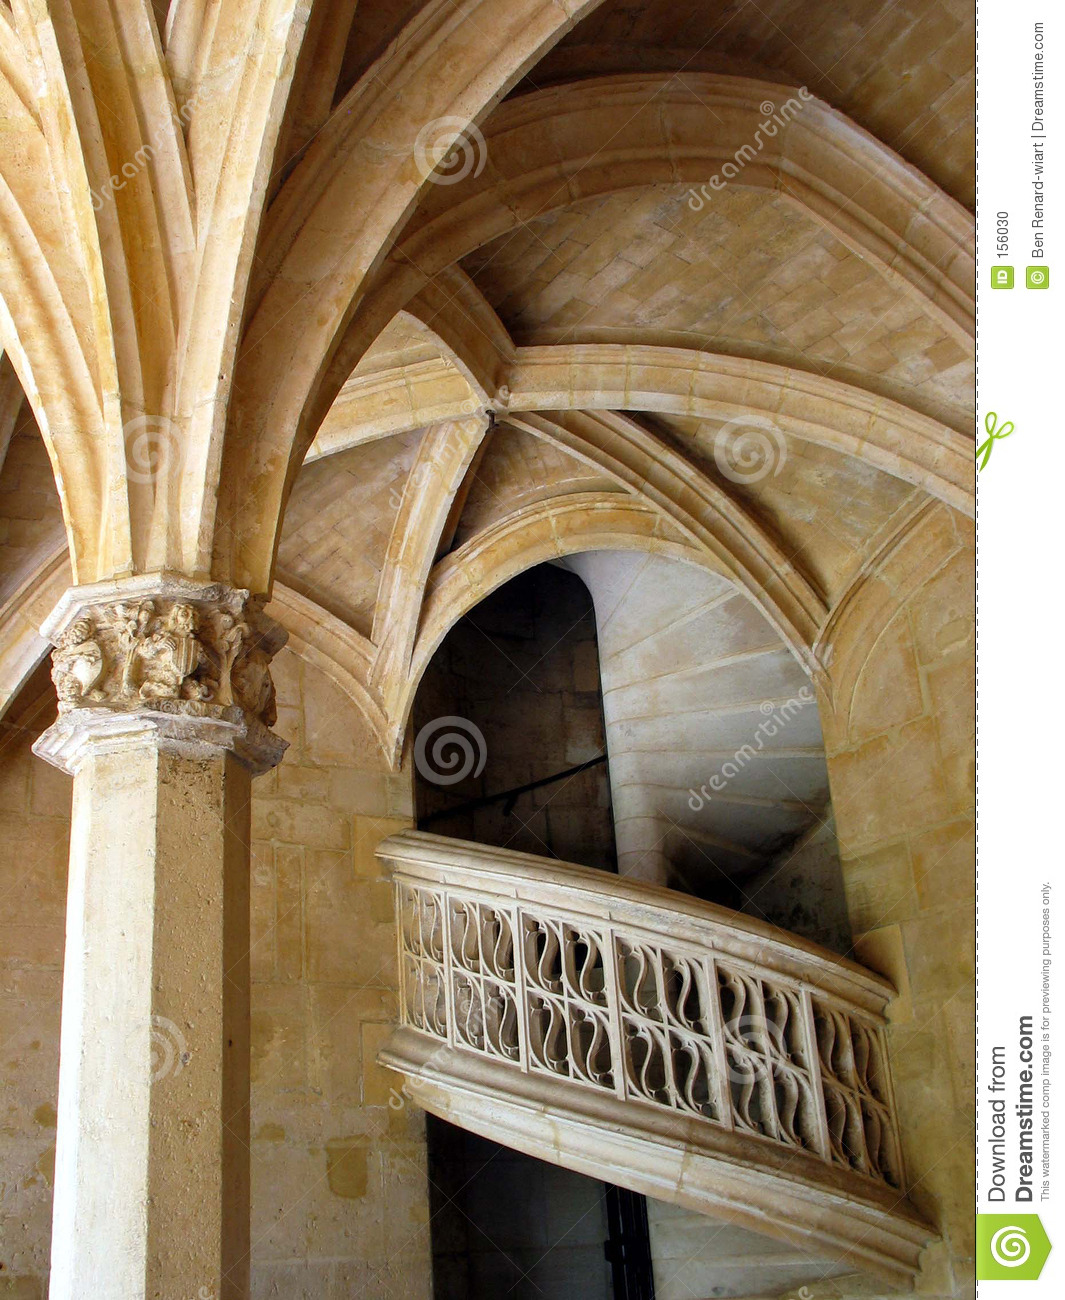 Spiral stone stairs. Cluny Museum. Paris. France.